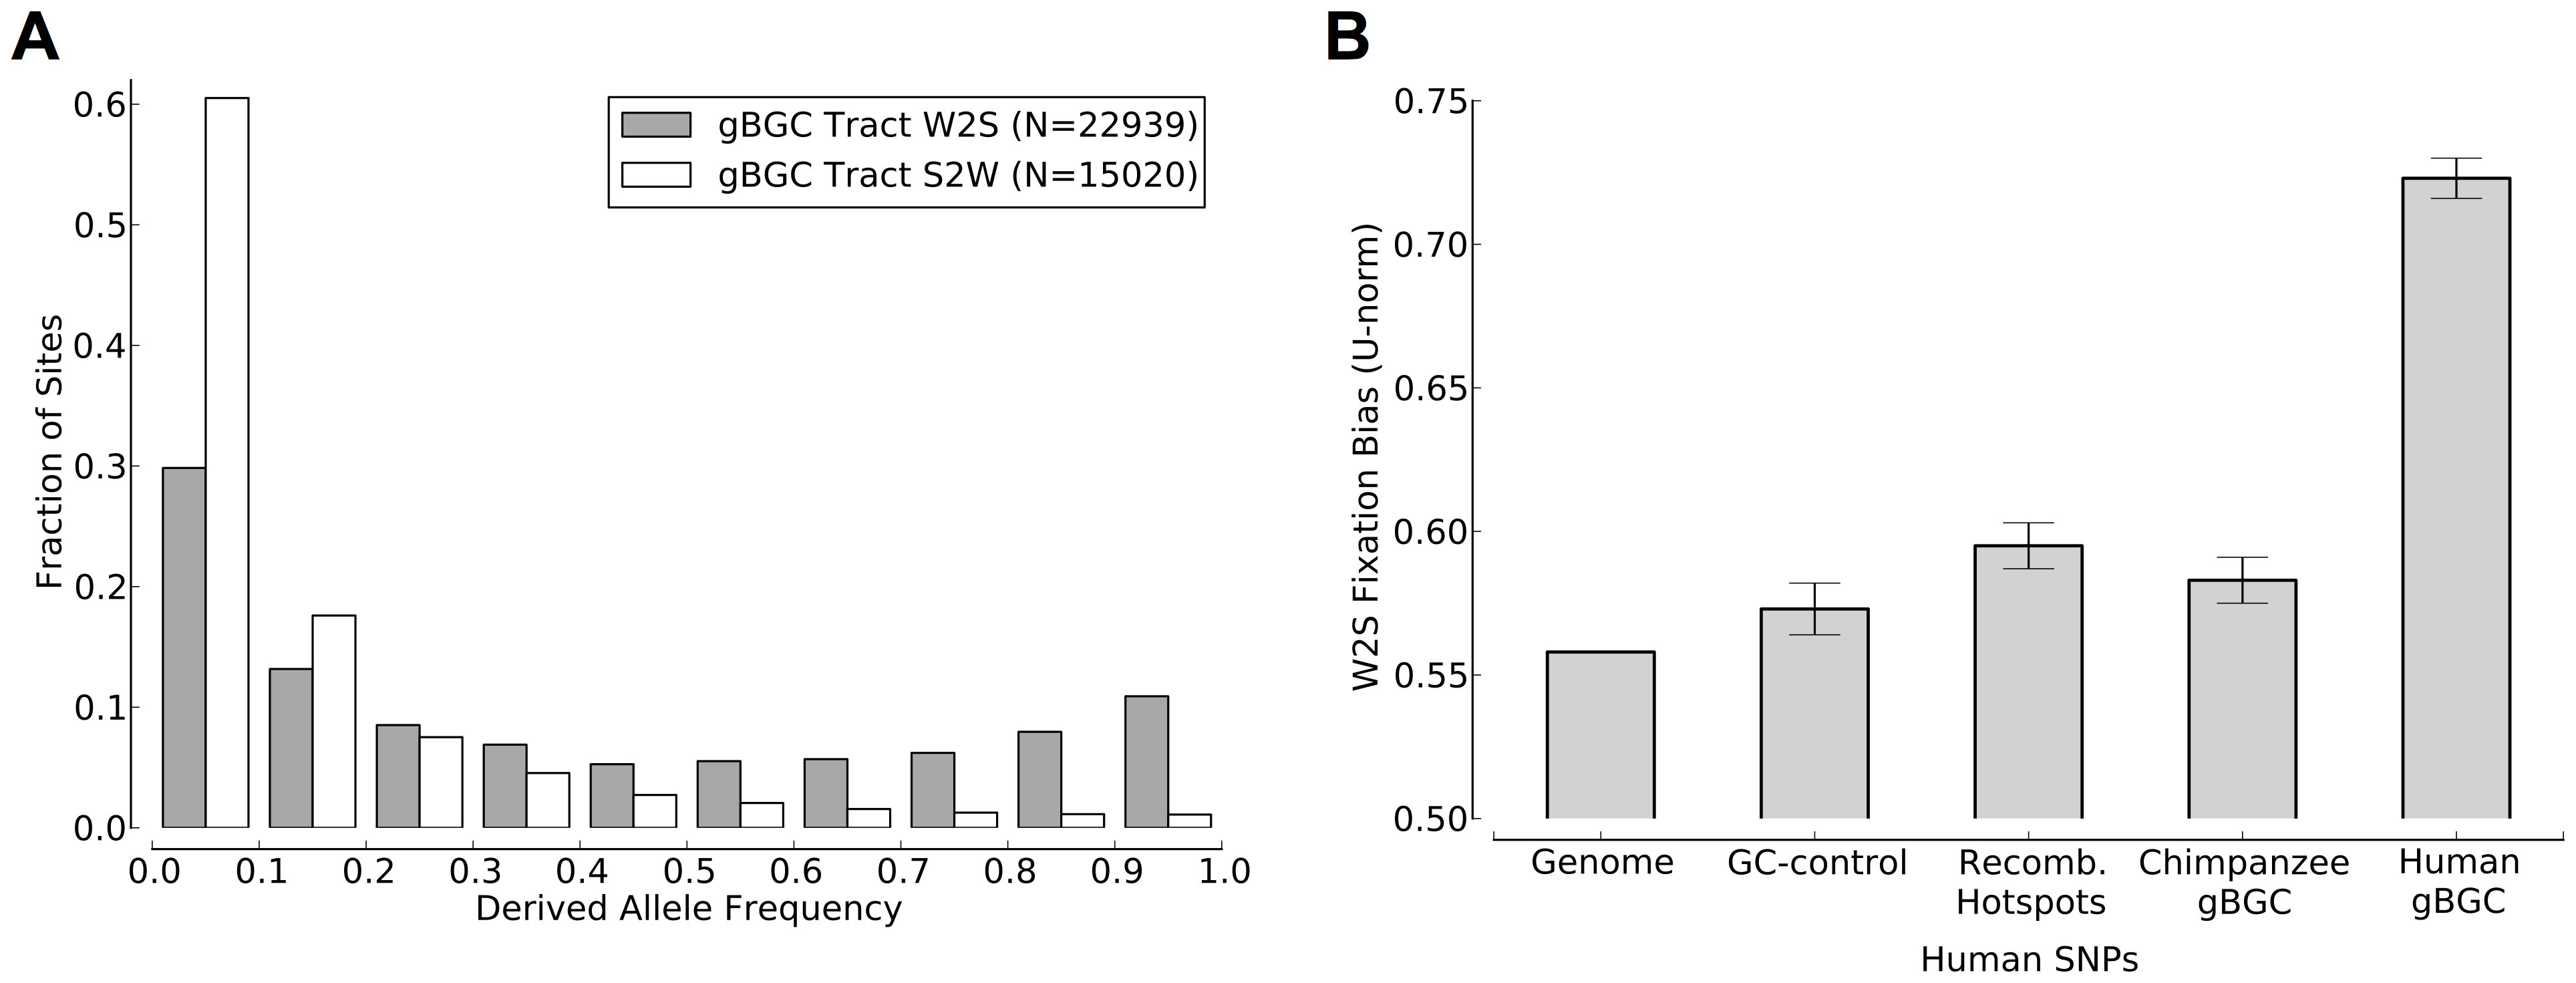 Human polymorphism data indicates an ongoing preference for the fixation of G and C alleles in the predicted gBGC tracts.